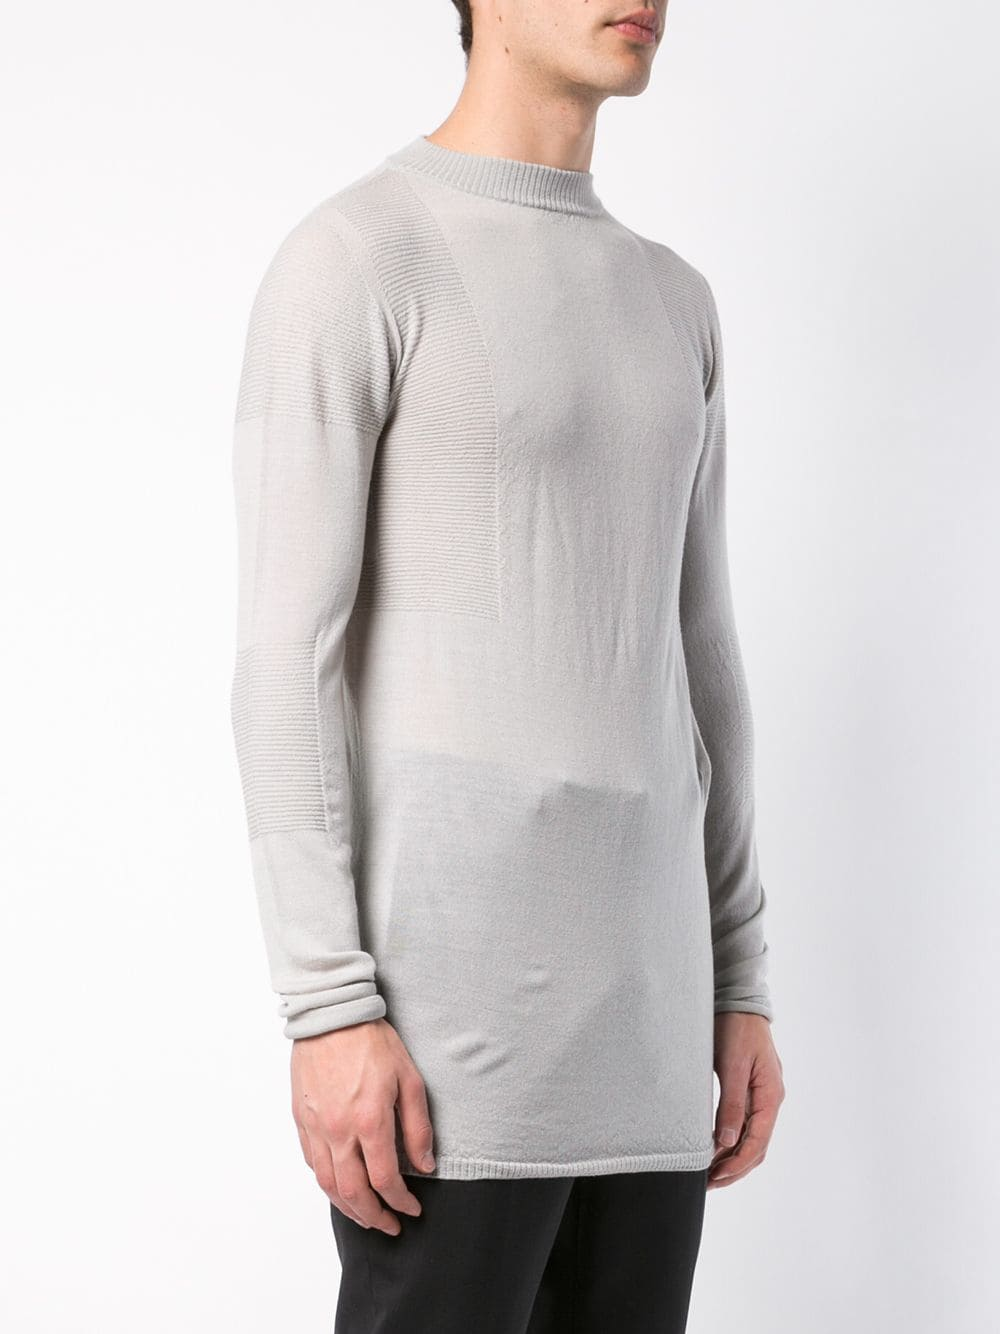 RICK OWENS MEN LEVEL LUPETTO SWEATER